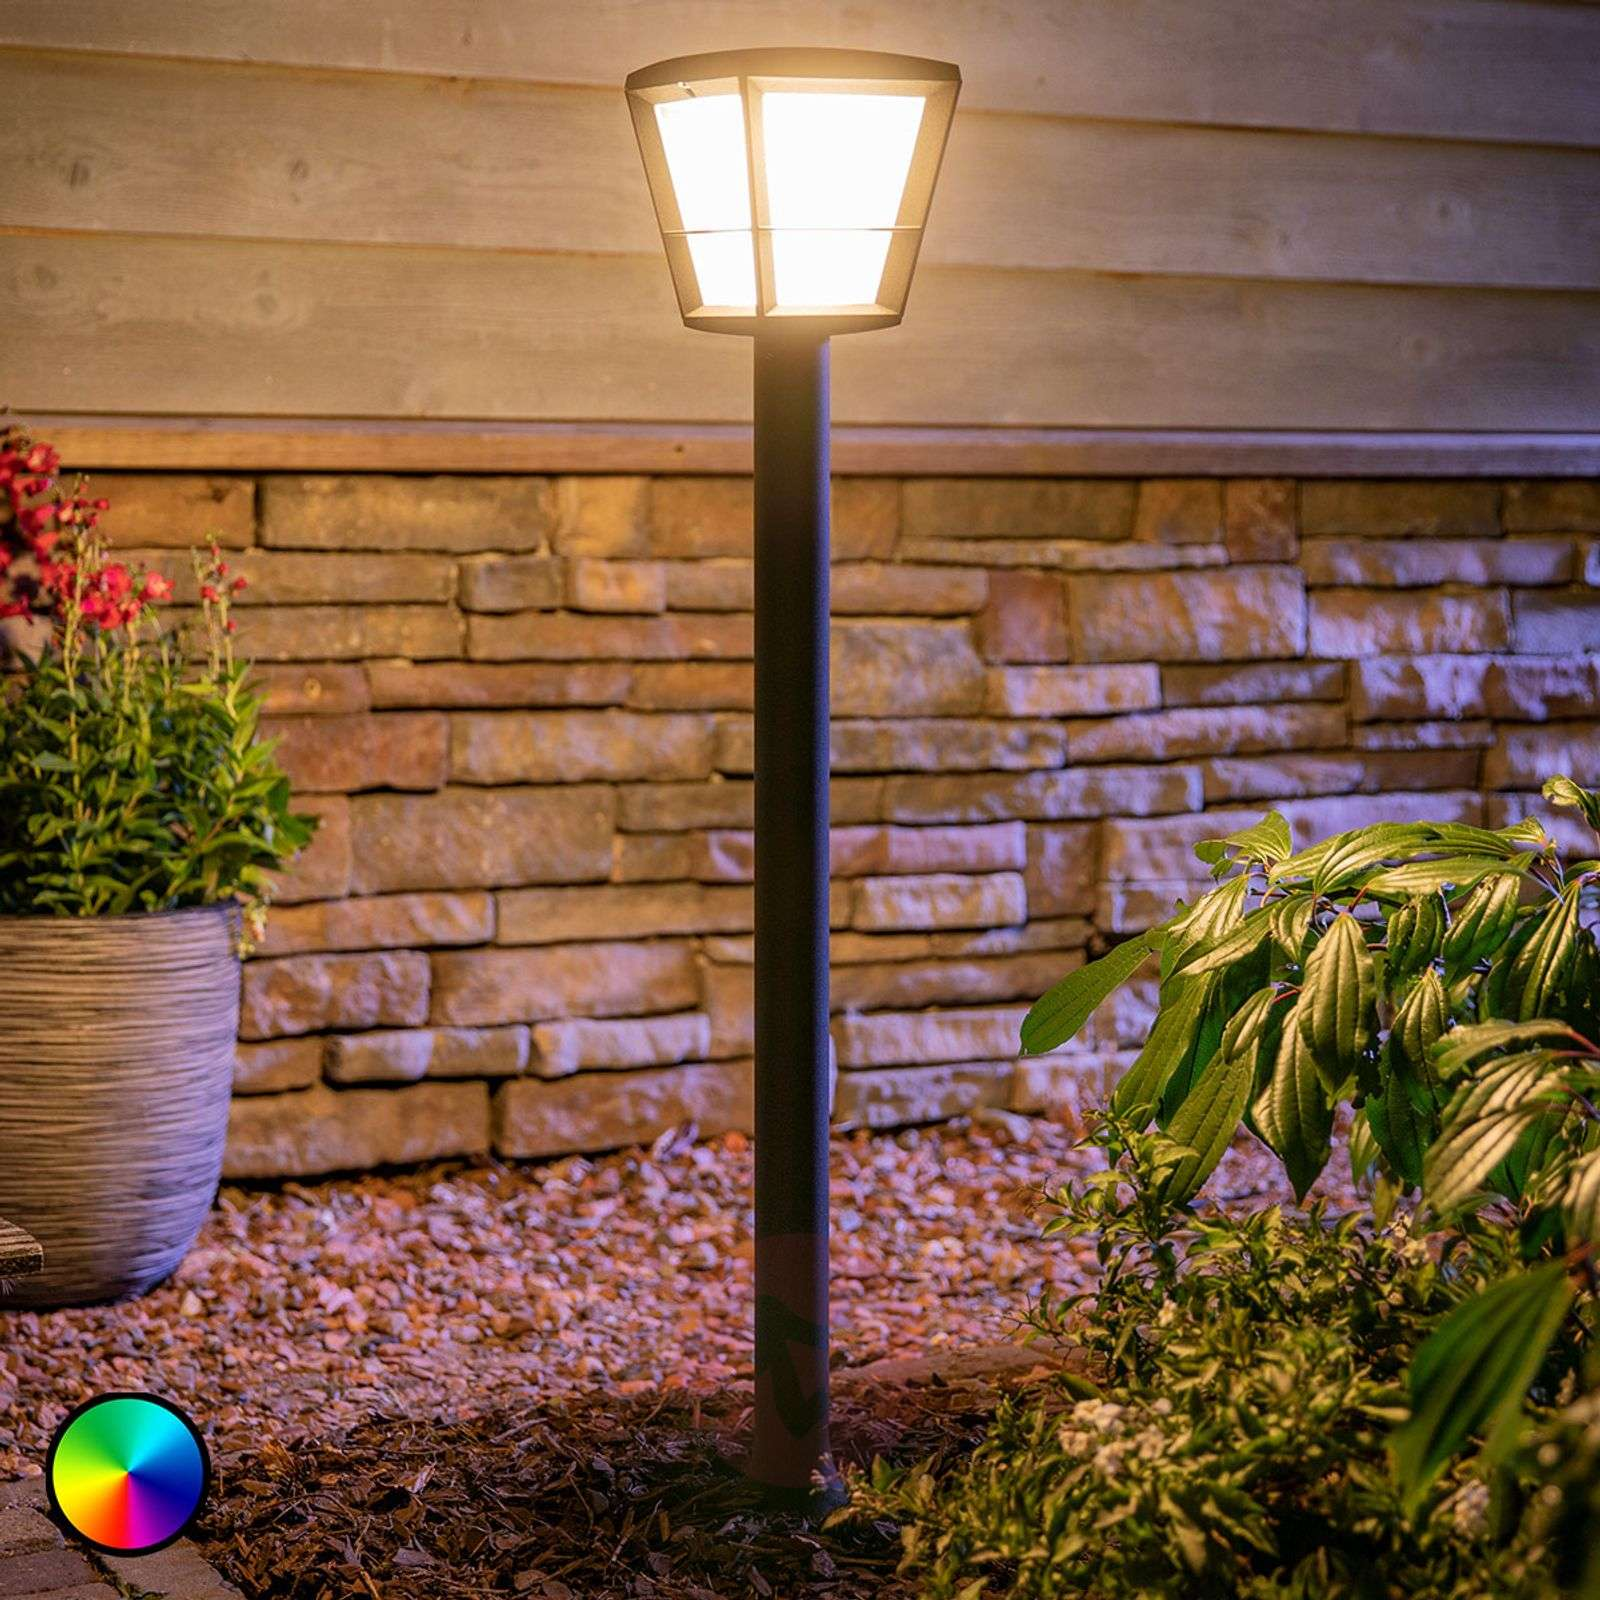 Philips Hue White+Color Econic LED path light-7534120-02